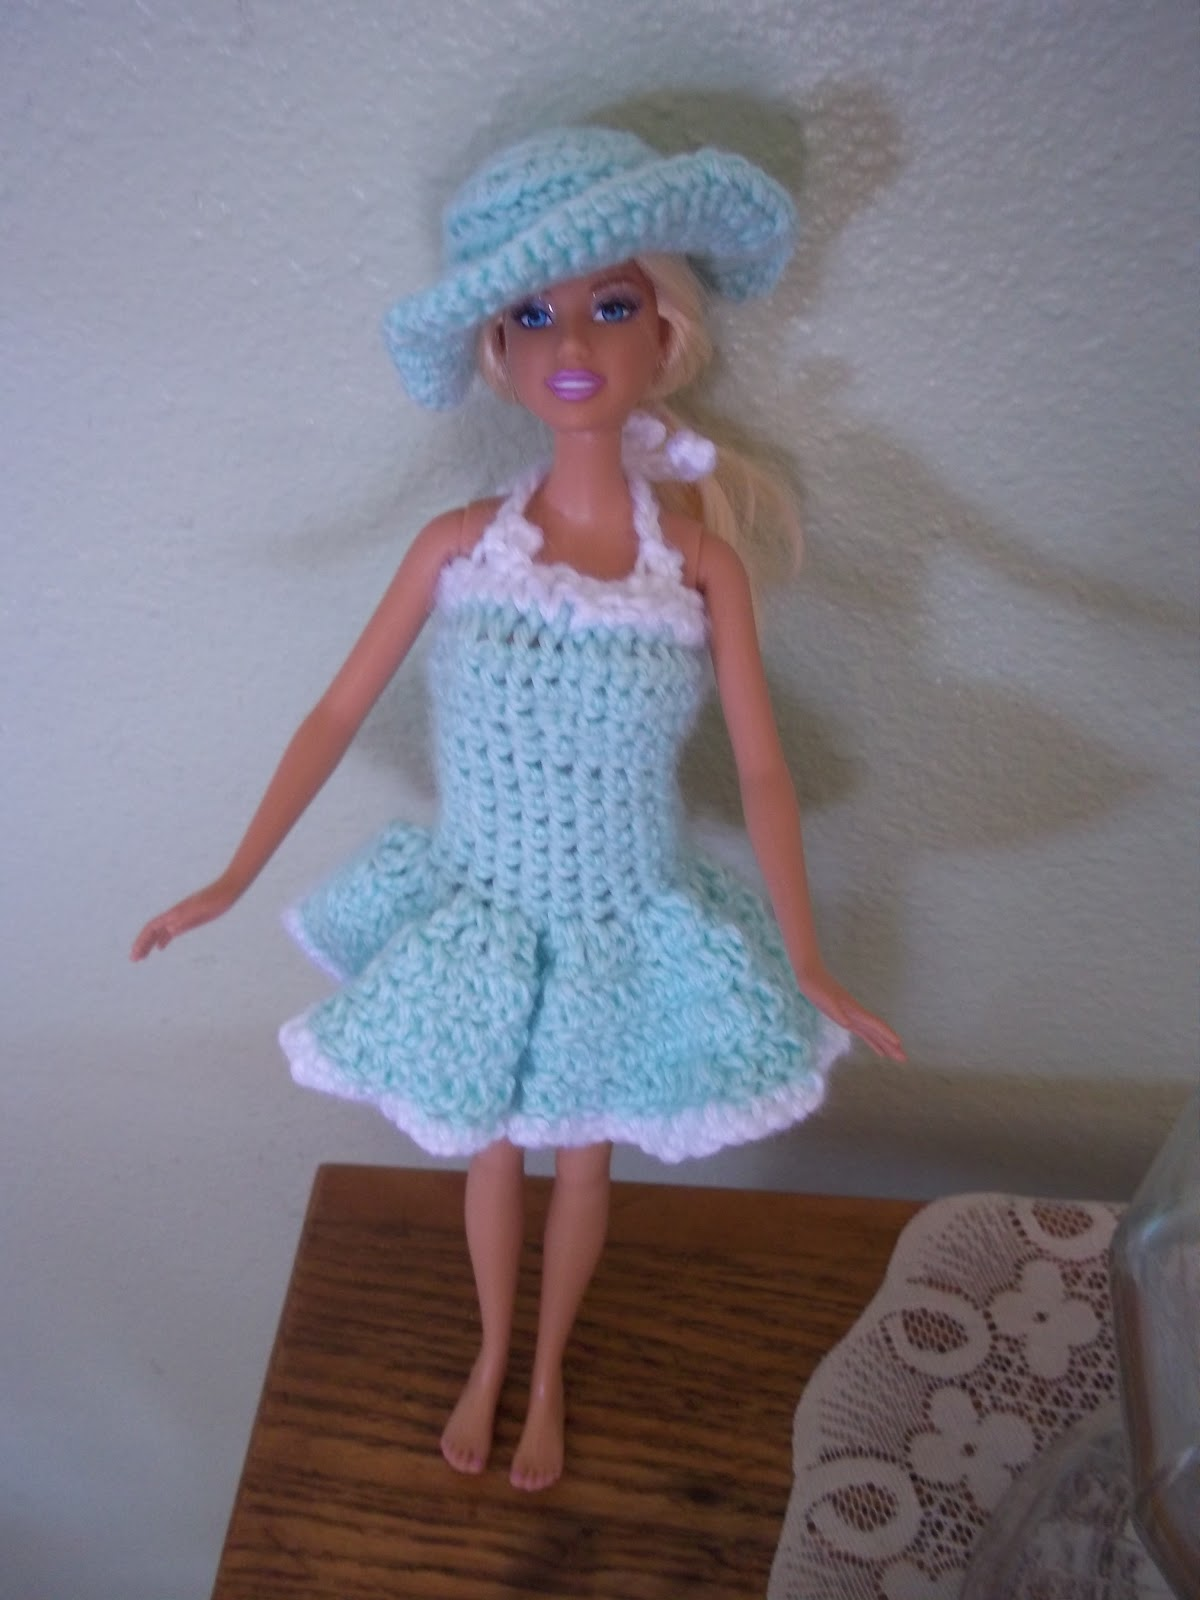 Crochet Barbie : Download image Free Crochet Patterns Barbie Doll Dresses PC, Android ...